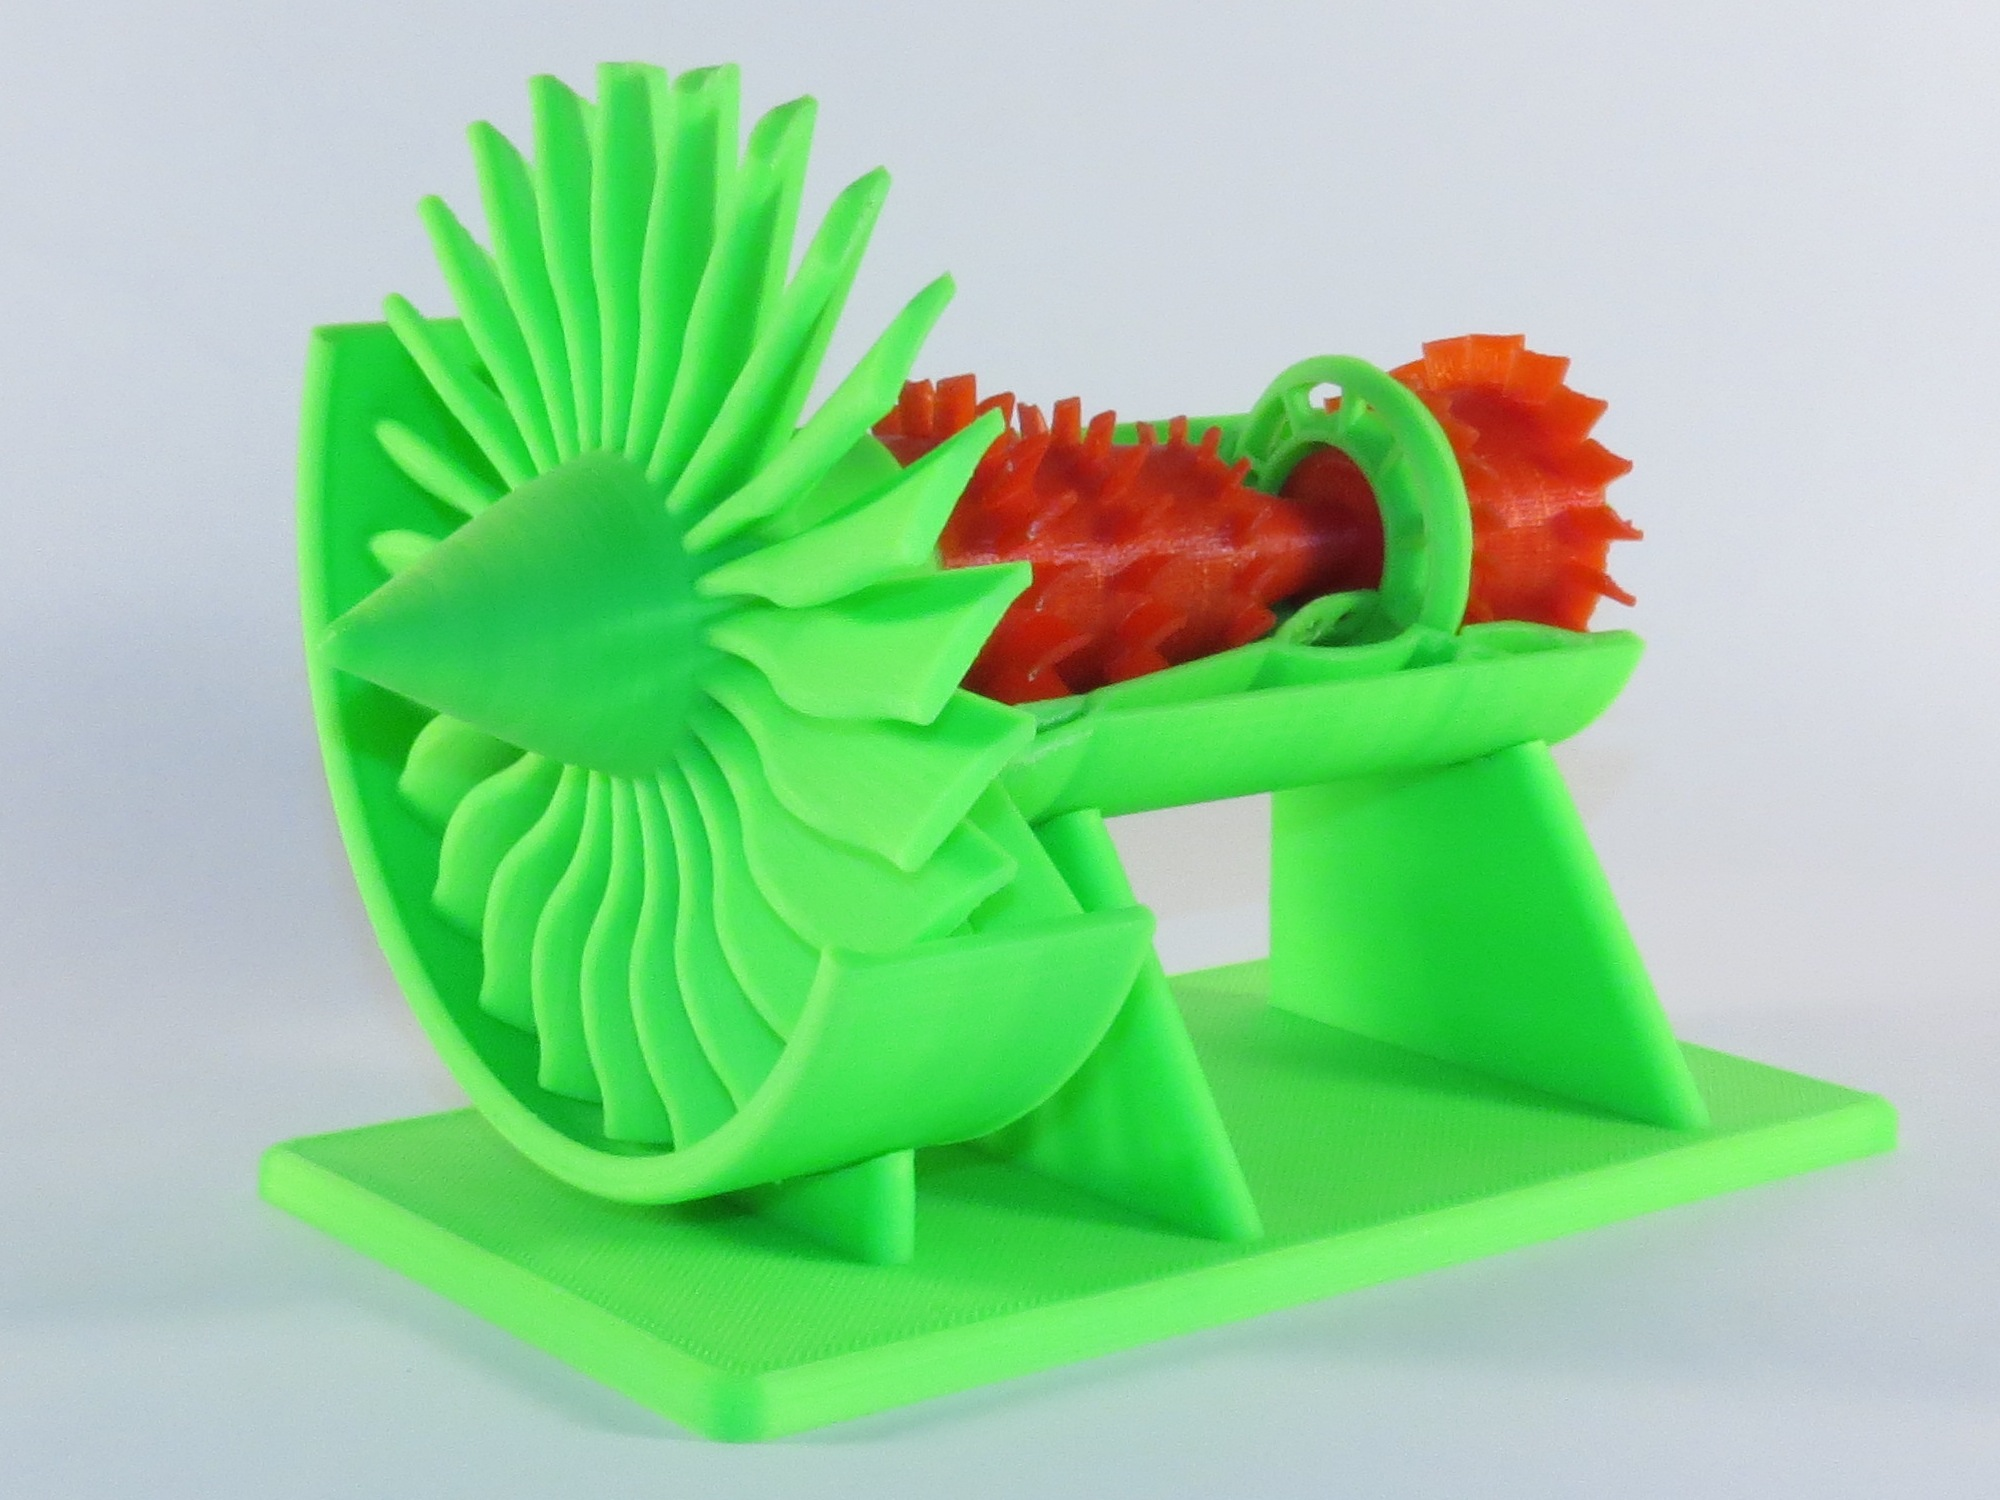 abs-3d-printed-jet-engine-model-3-with-3fxtrud-by-shapingbits.jpg